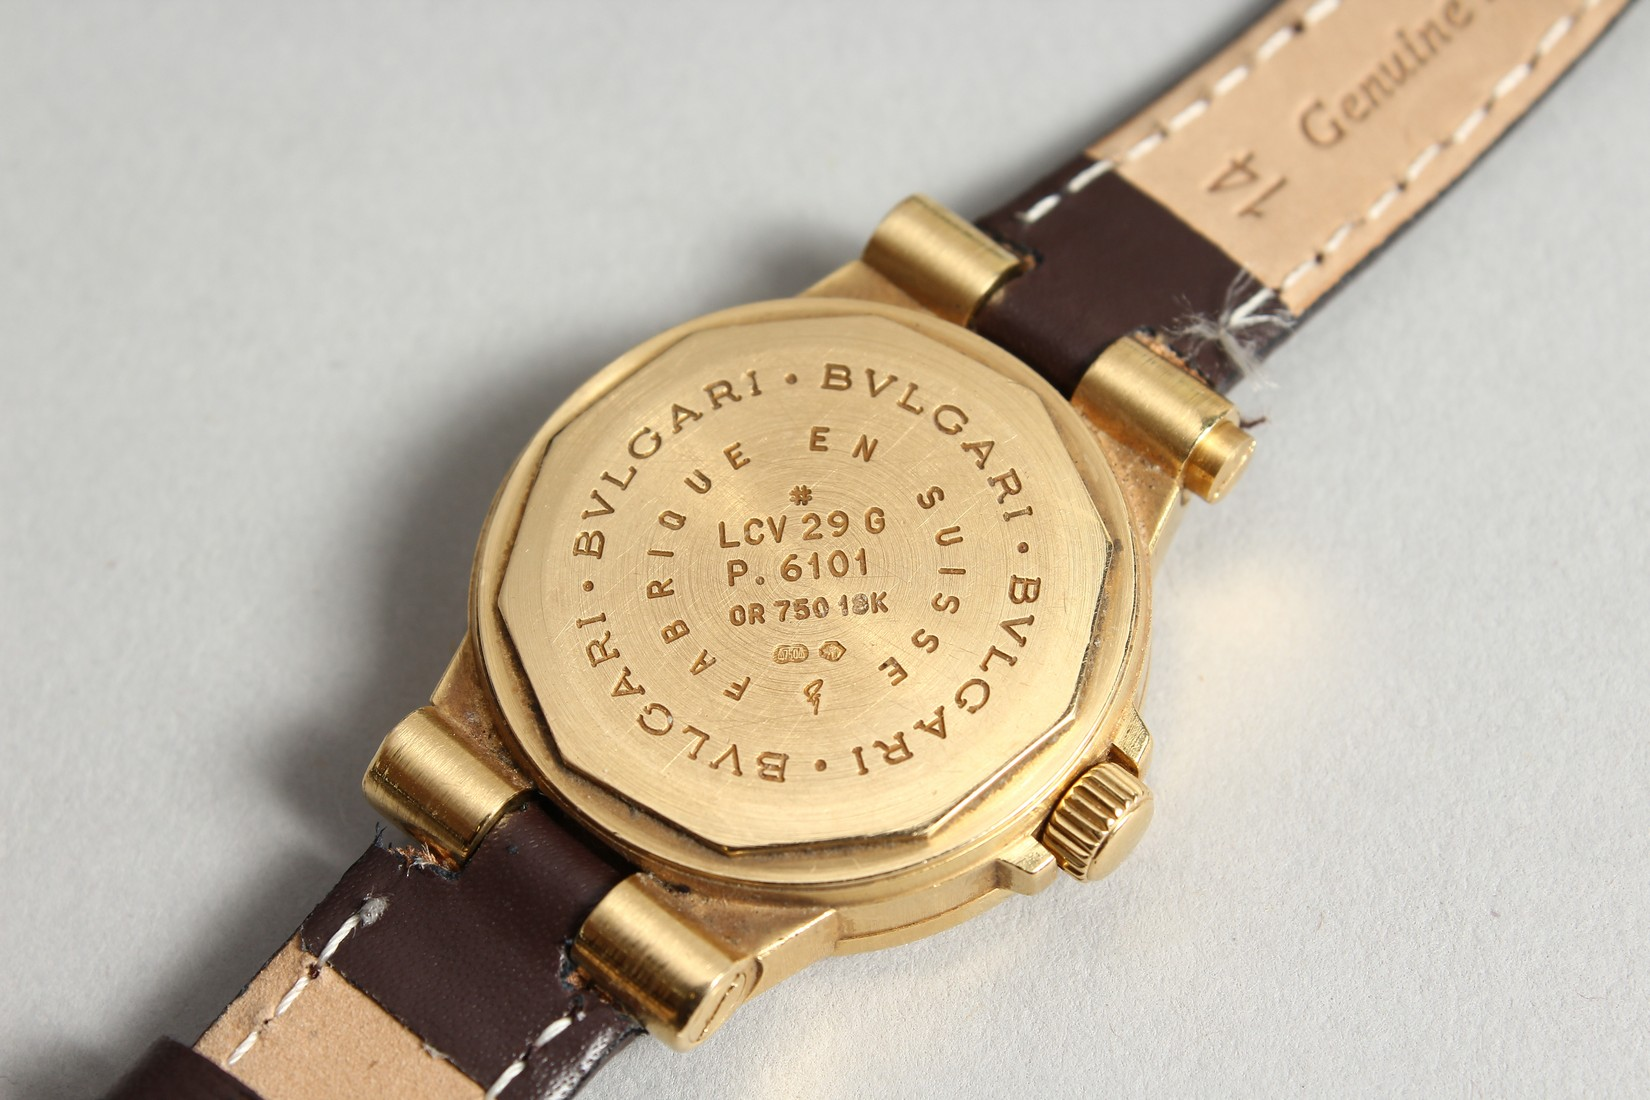 AN 18CT. GOLD BULGARI WRIST WATCH with leather strap, in original box. - Image 5 of 10